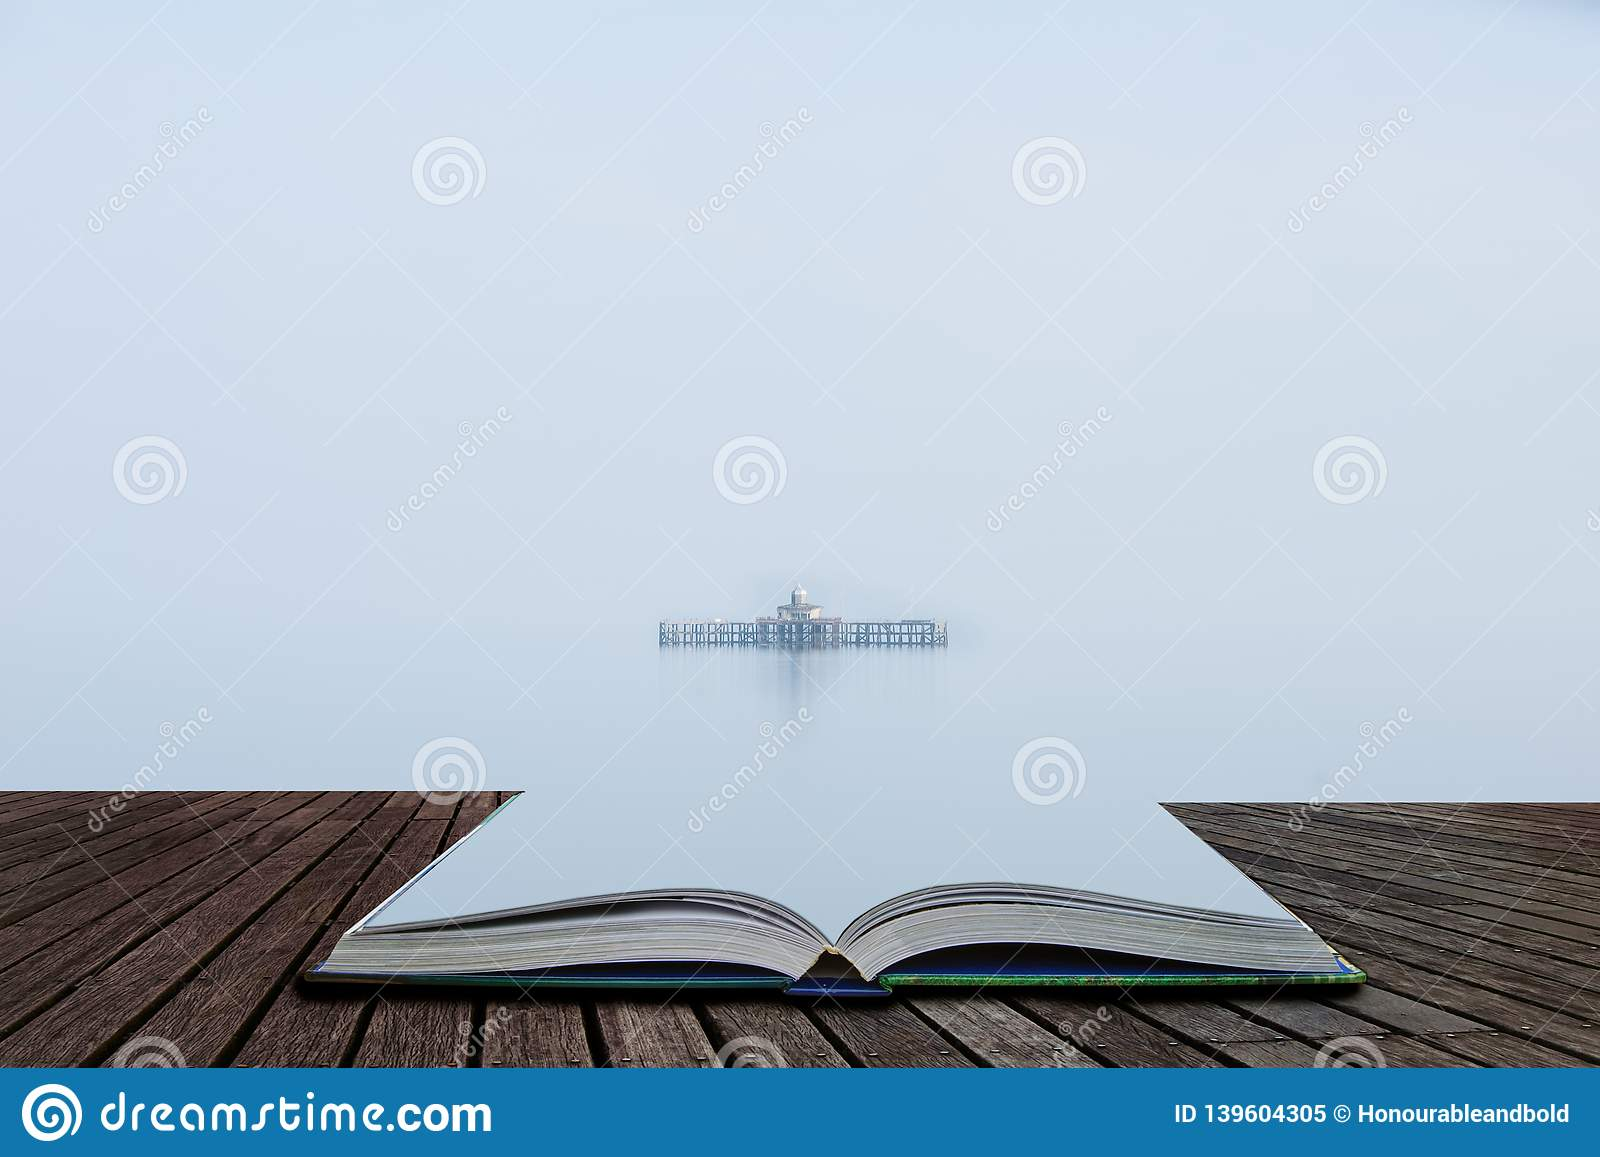 Fine art minimalist image of derelict pier remains at sea during foggy morning giving appearance of ruins floating coming out of